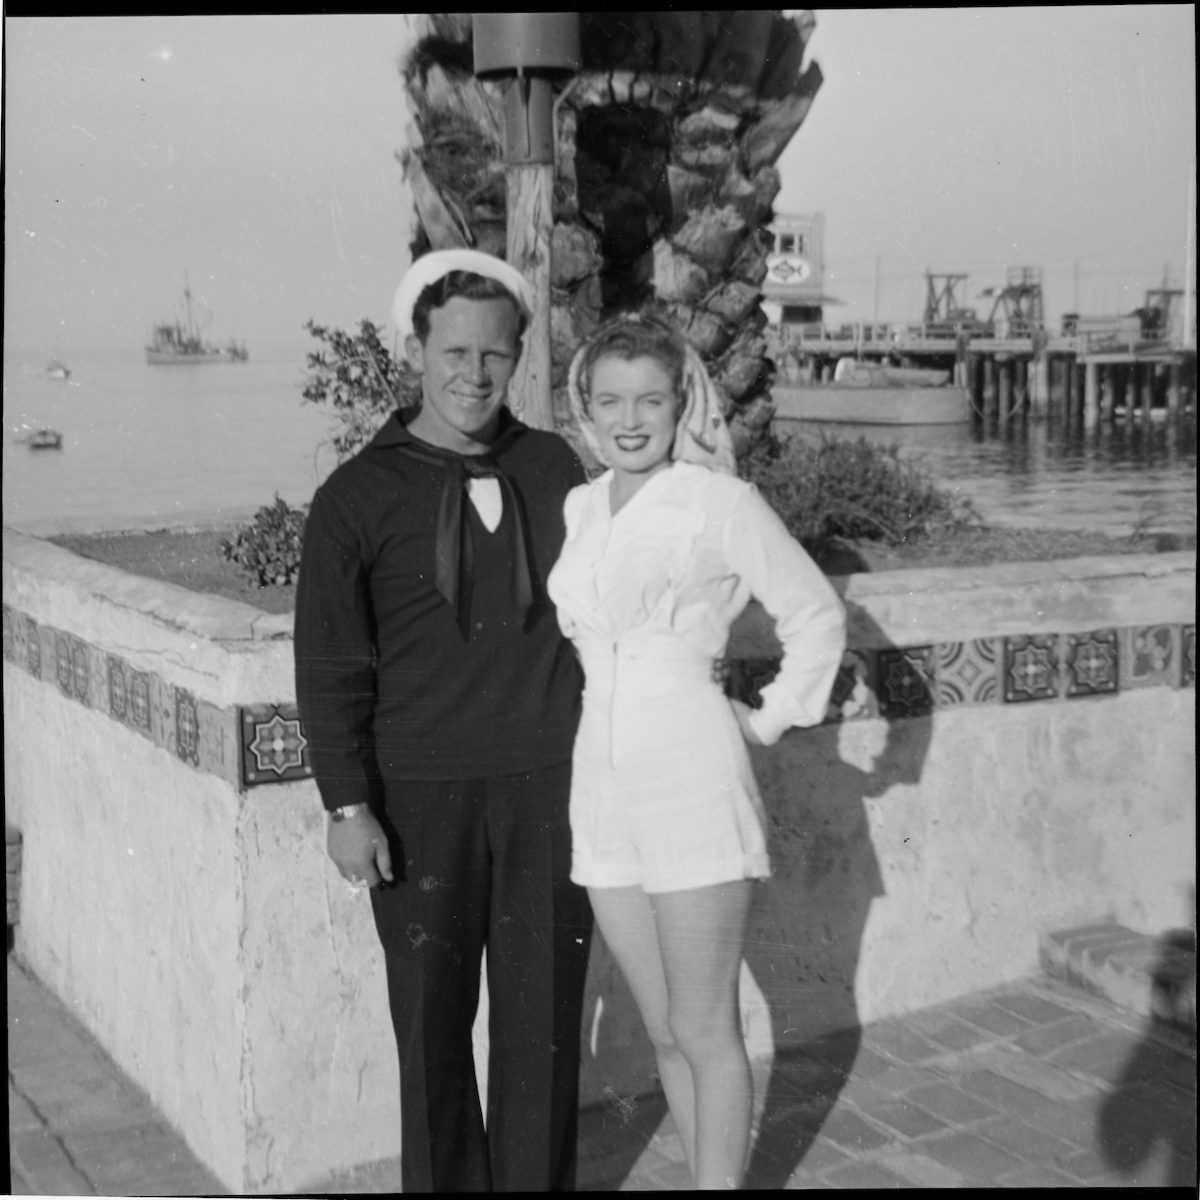 James Dougherty and Norma Jean Baker